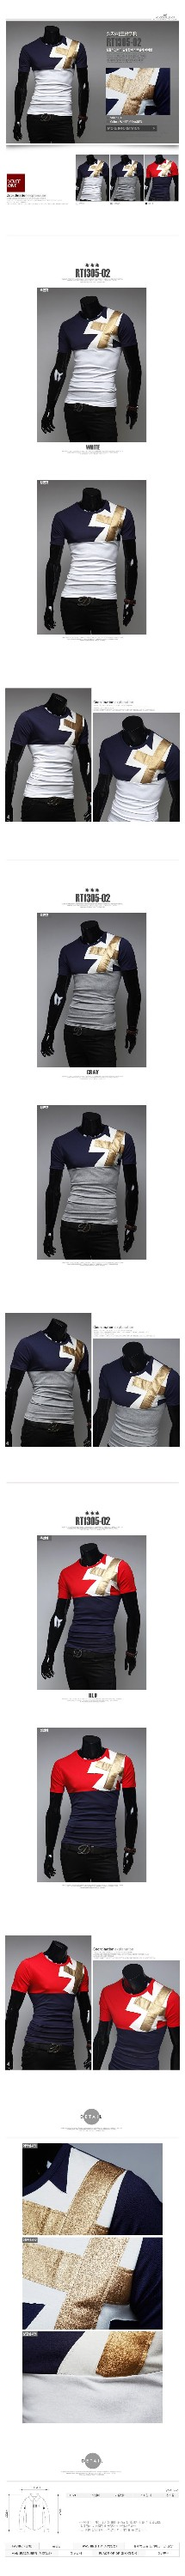 Free Shipping 2016 Lastest Fashion Summer O-neck Short Sleeves Splicing Leather Tee Shirt Casual T-shirts Men M-2XL